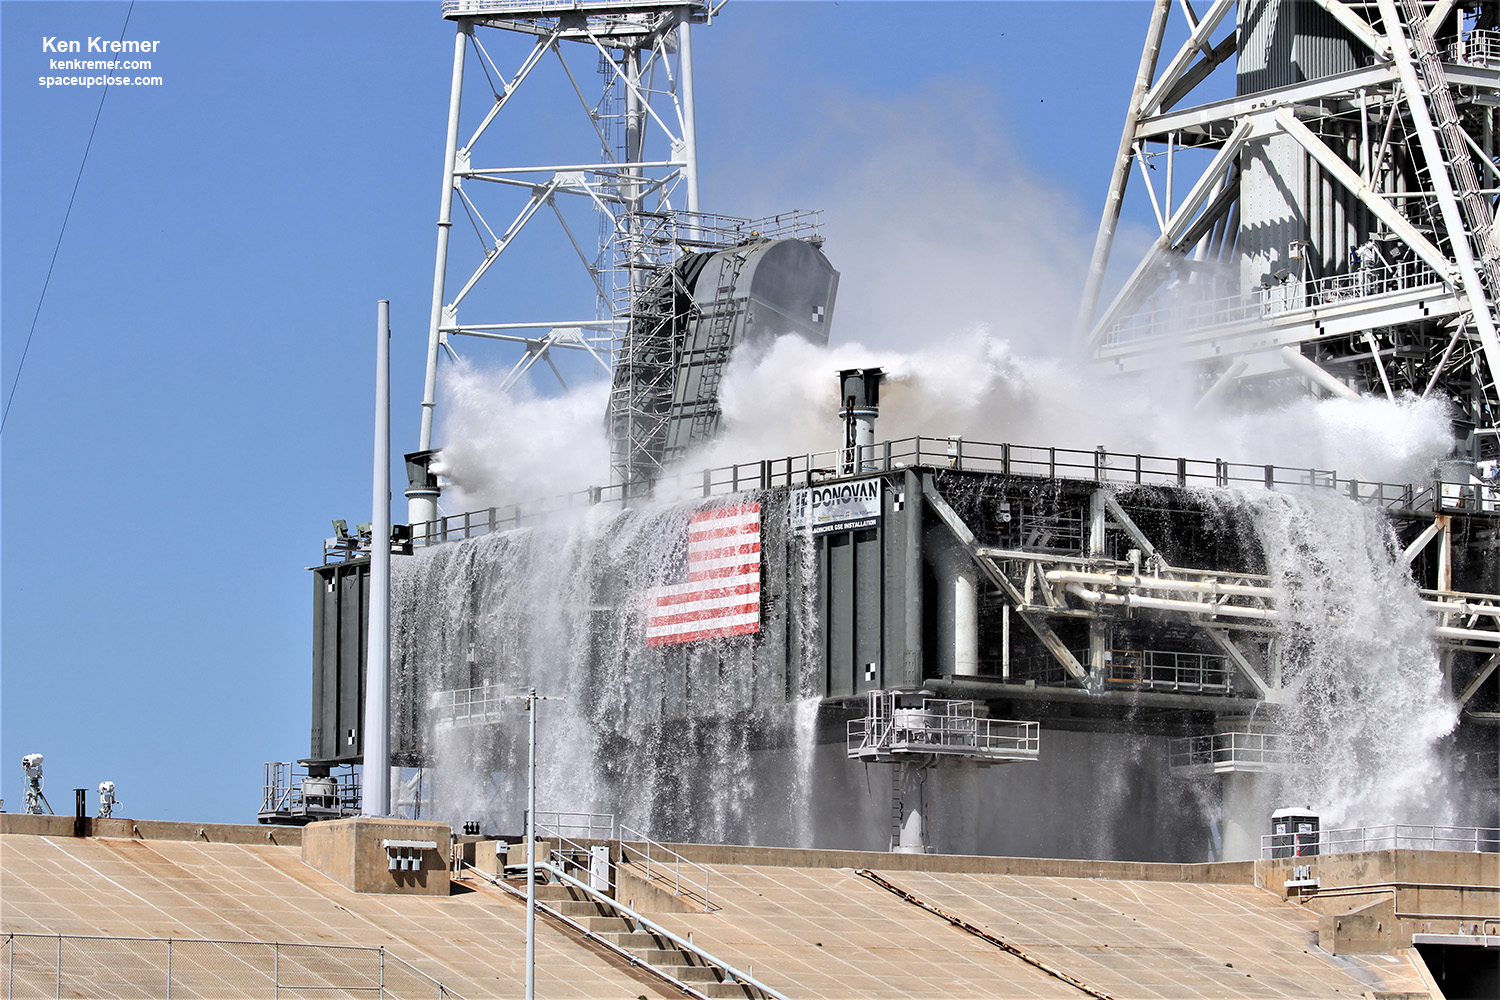 Kennedy Completes Final Water Flow Test at Pad 39B for SLS Artemis 1 Moon Rocket